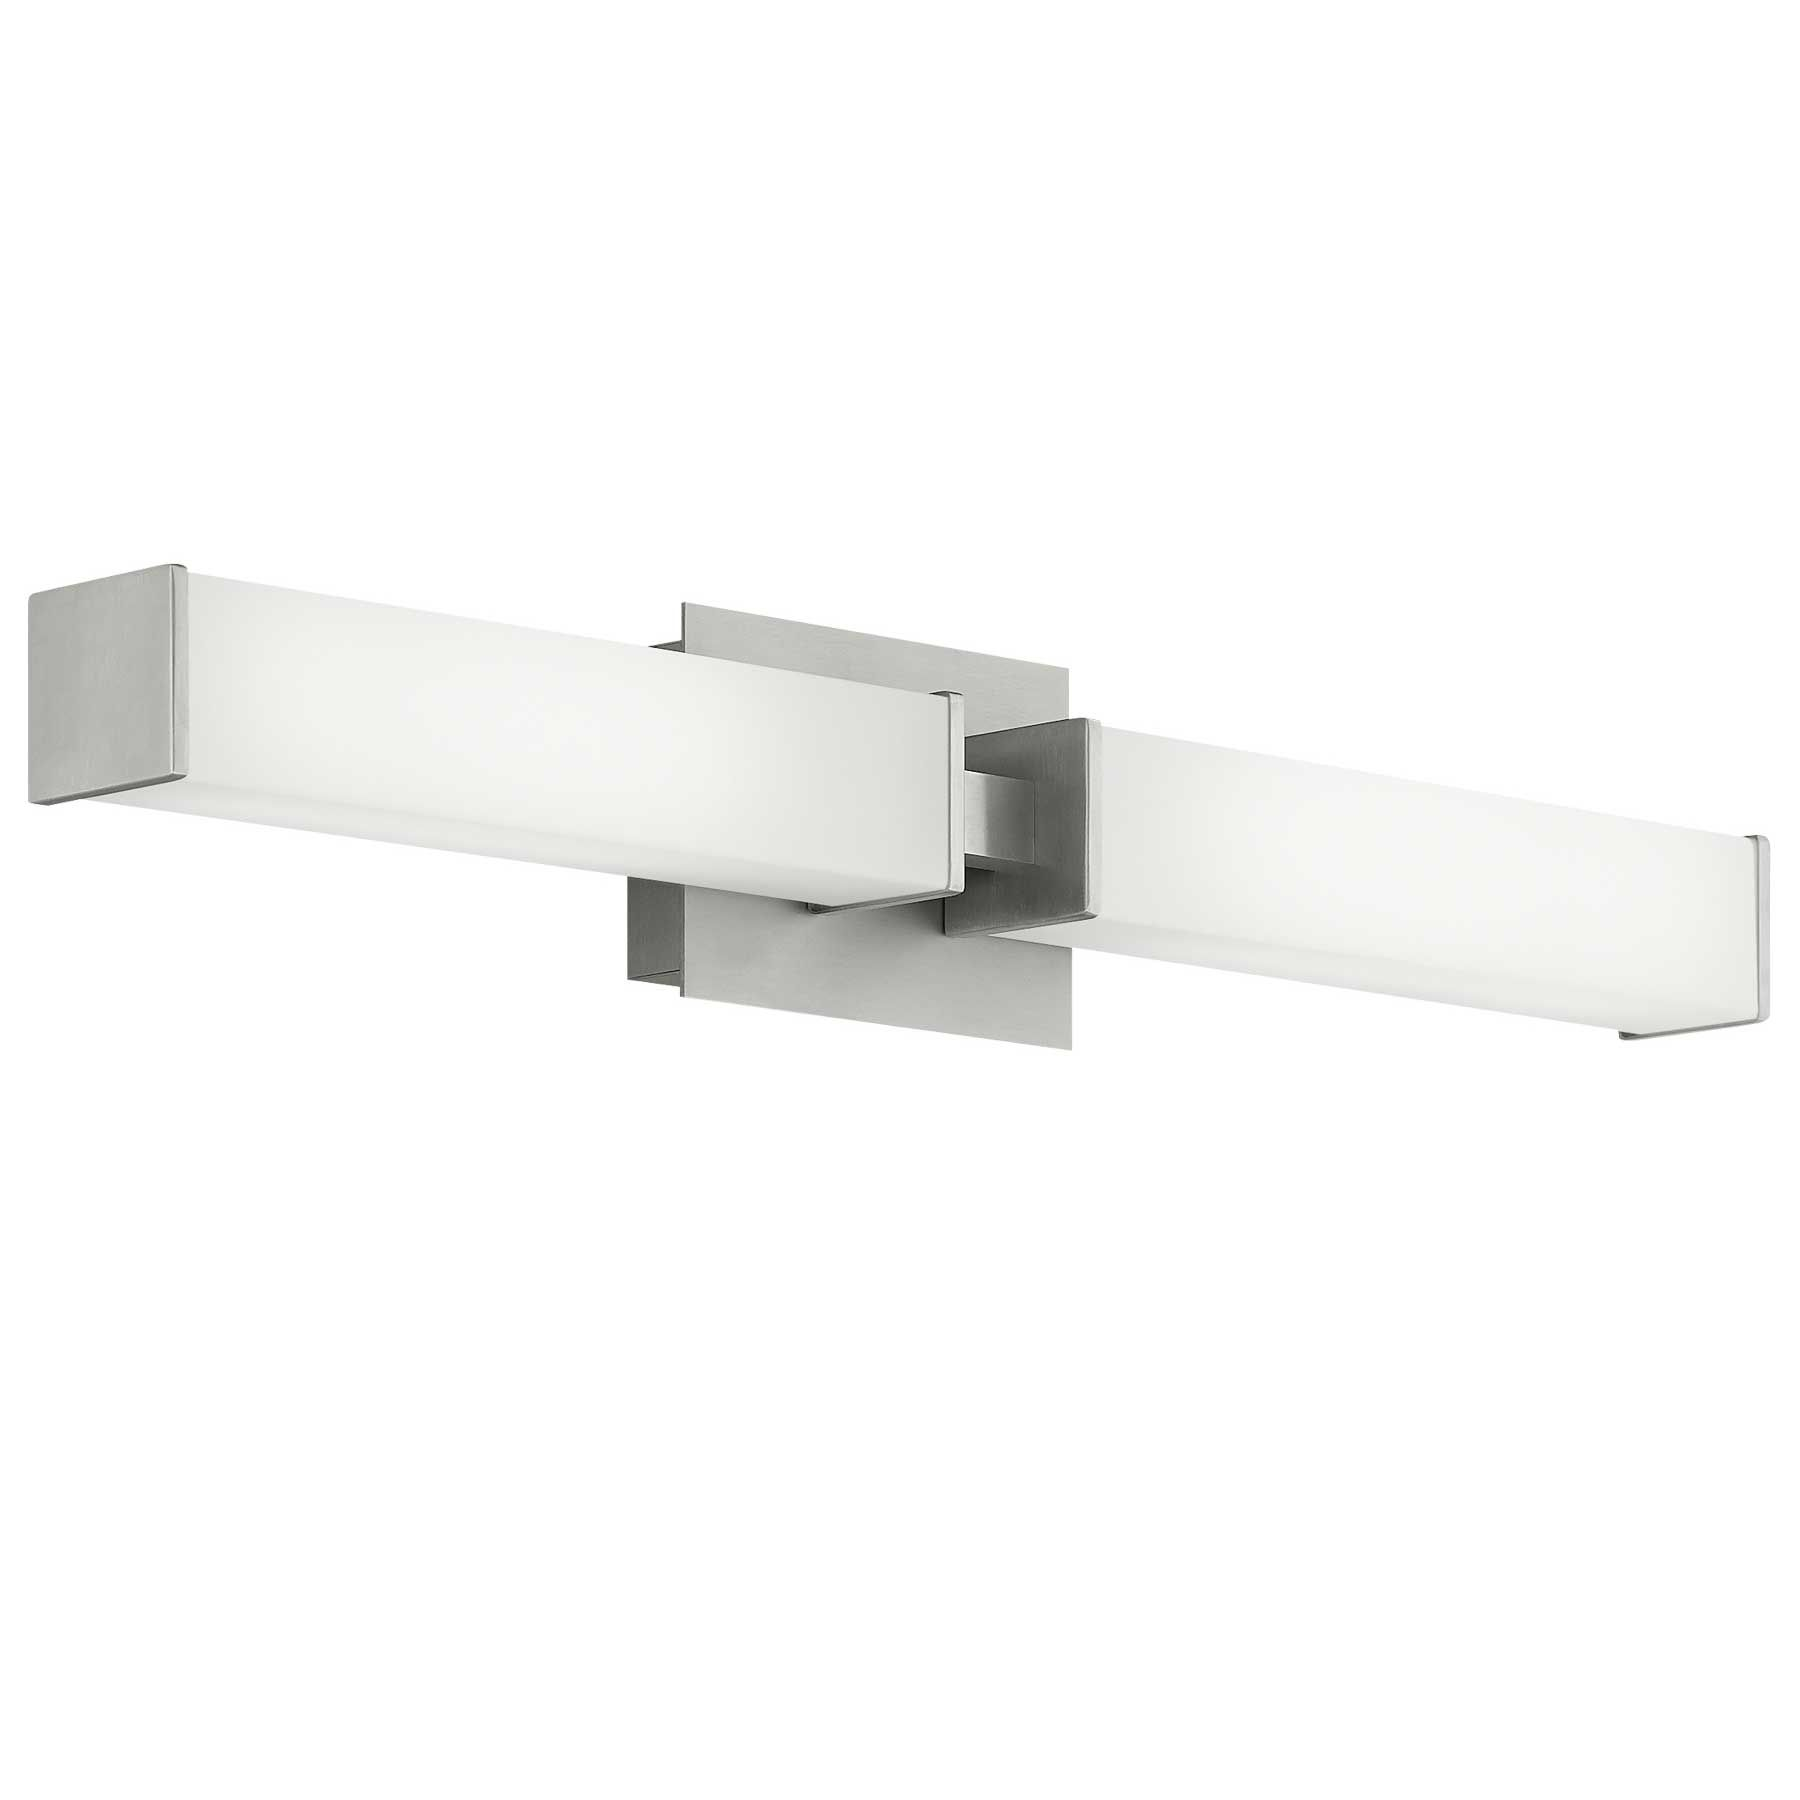 Alden Bath Bar Features Dual Linear Acrylic Shades Providing Both Task And Ambient Ligh In 2020 Bathroom Led Light Fixtures Led Bathroom Lights Bathroom Light Fixtures